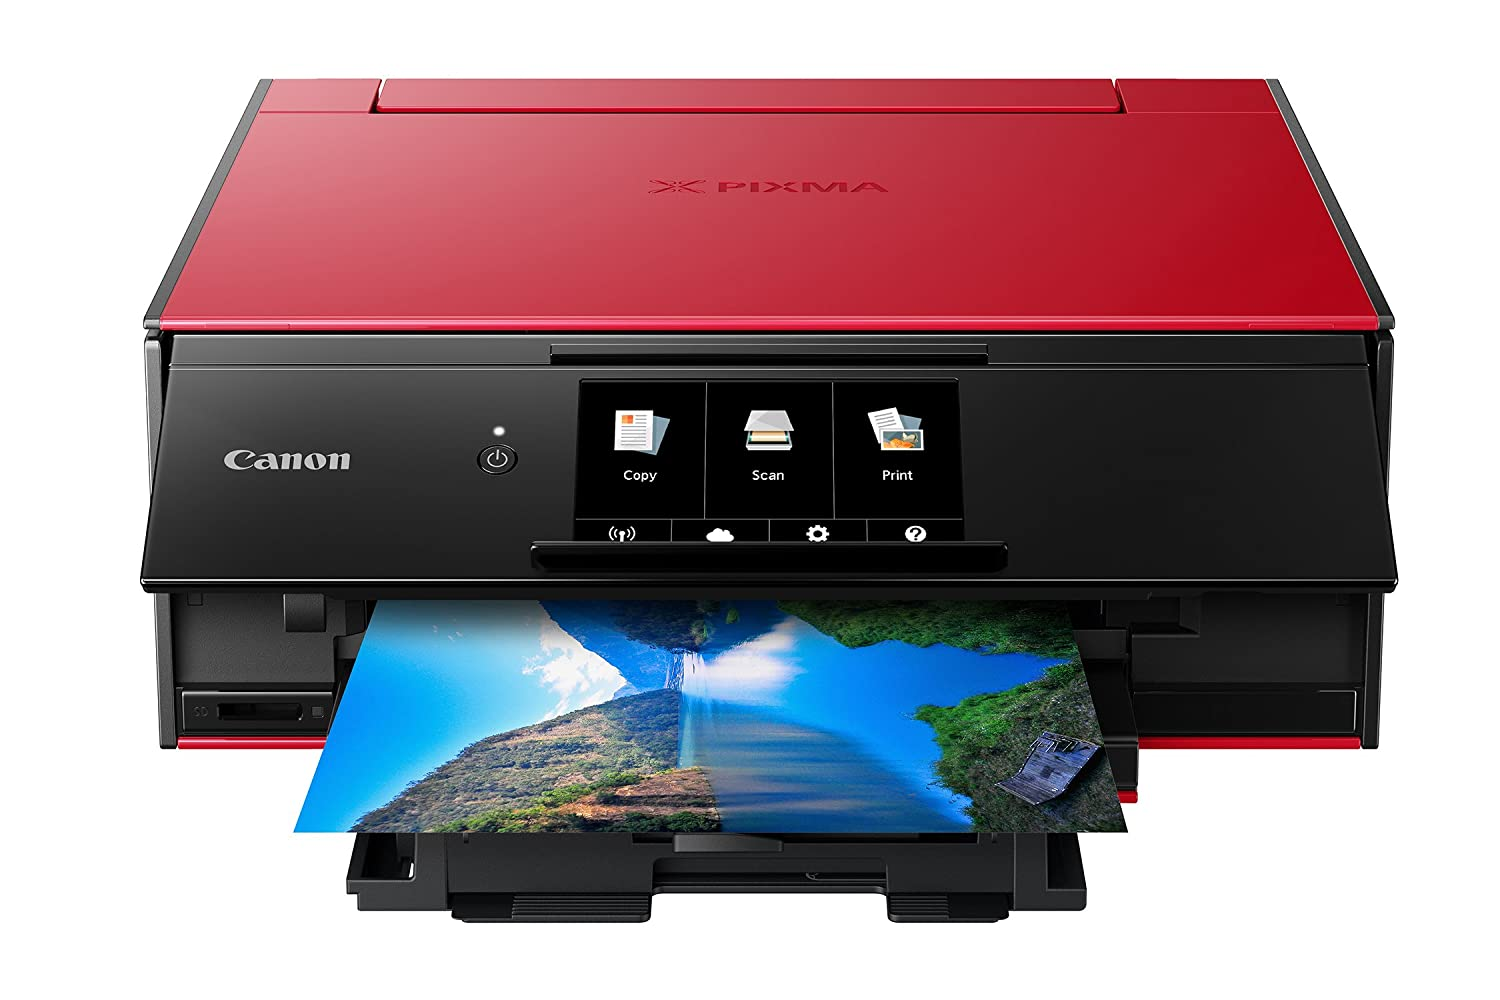 Best All In One Computer 2020 10 Best Printer 2020 All in One Home Printer 2021